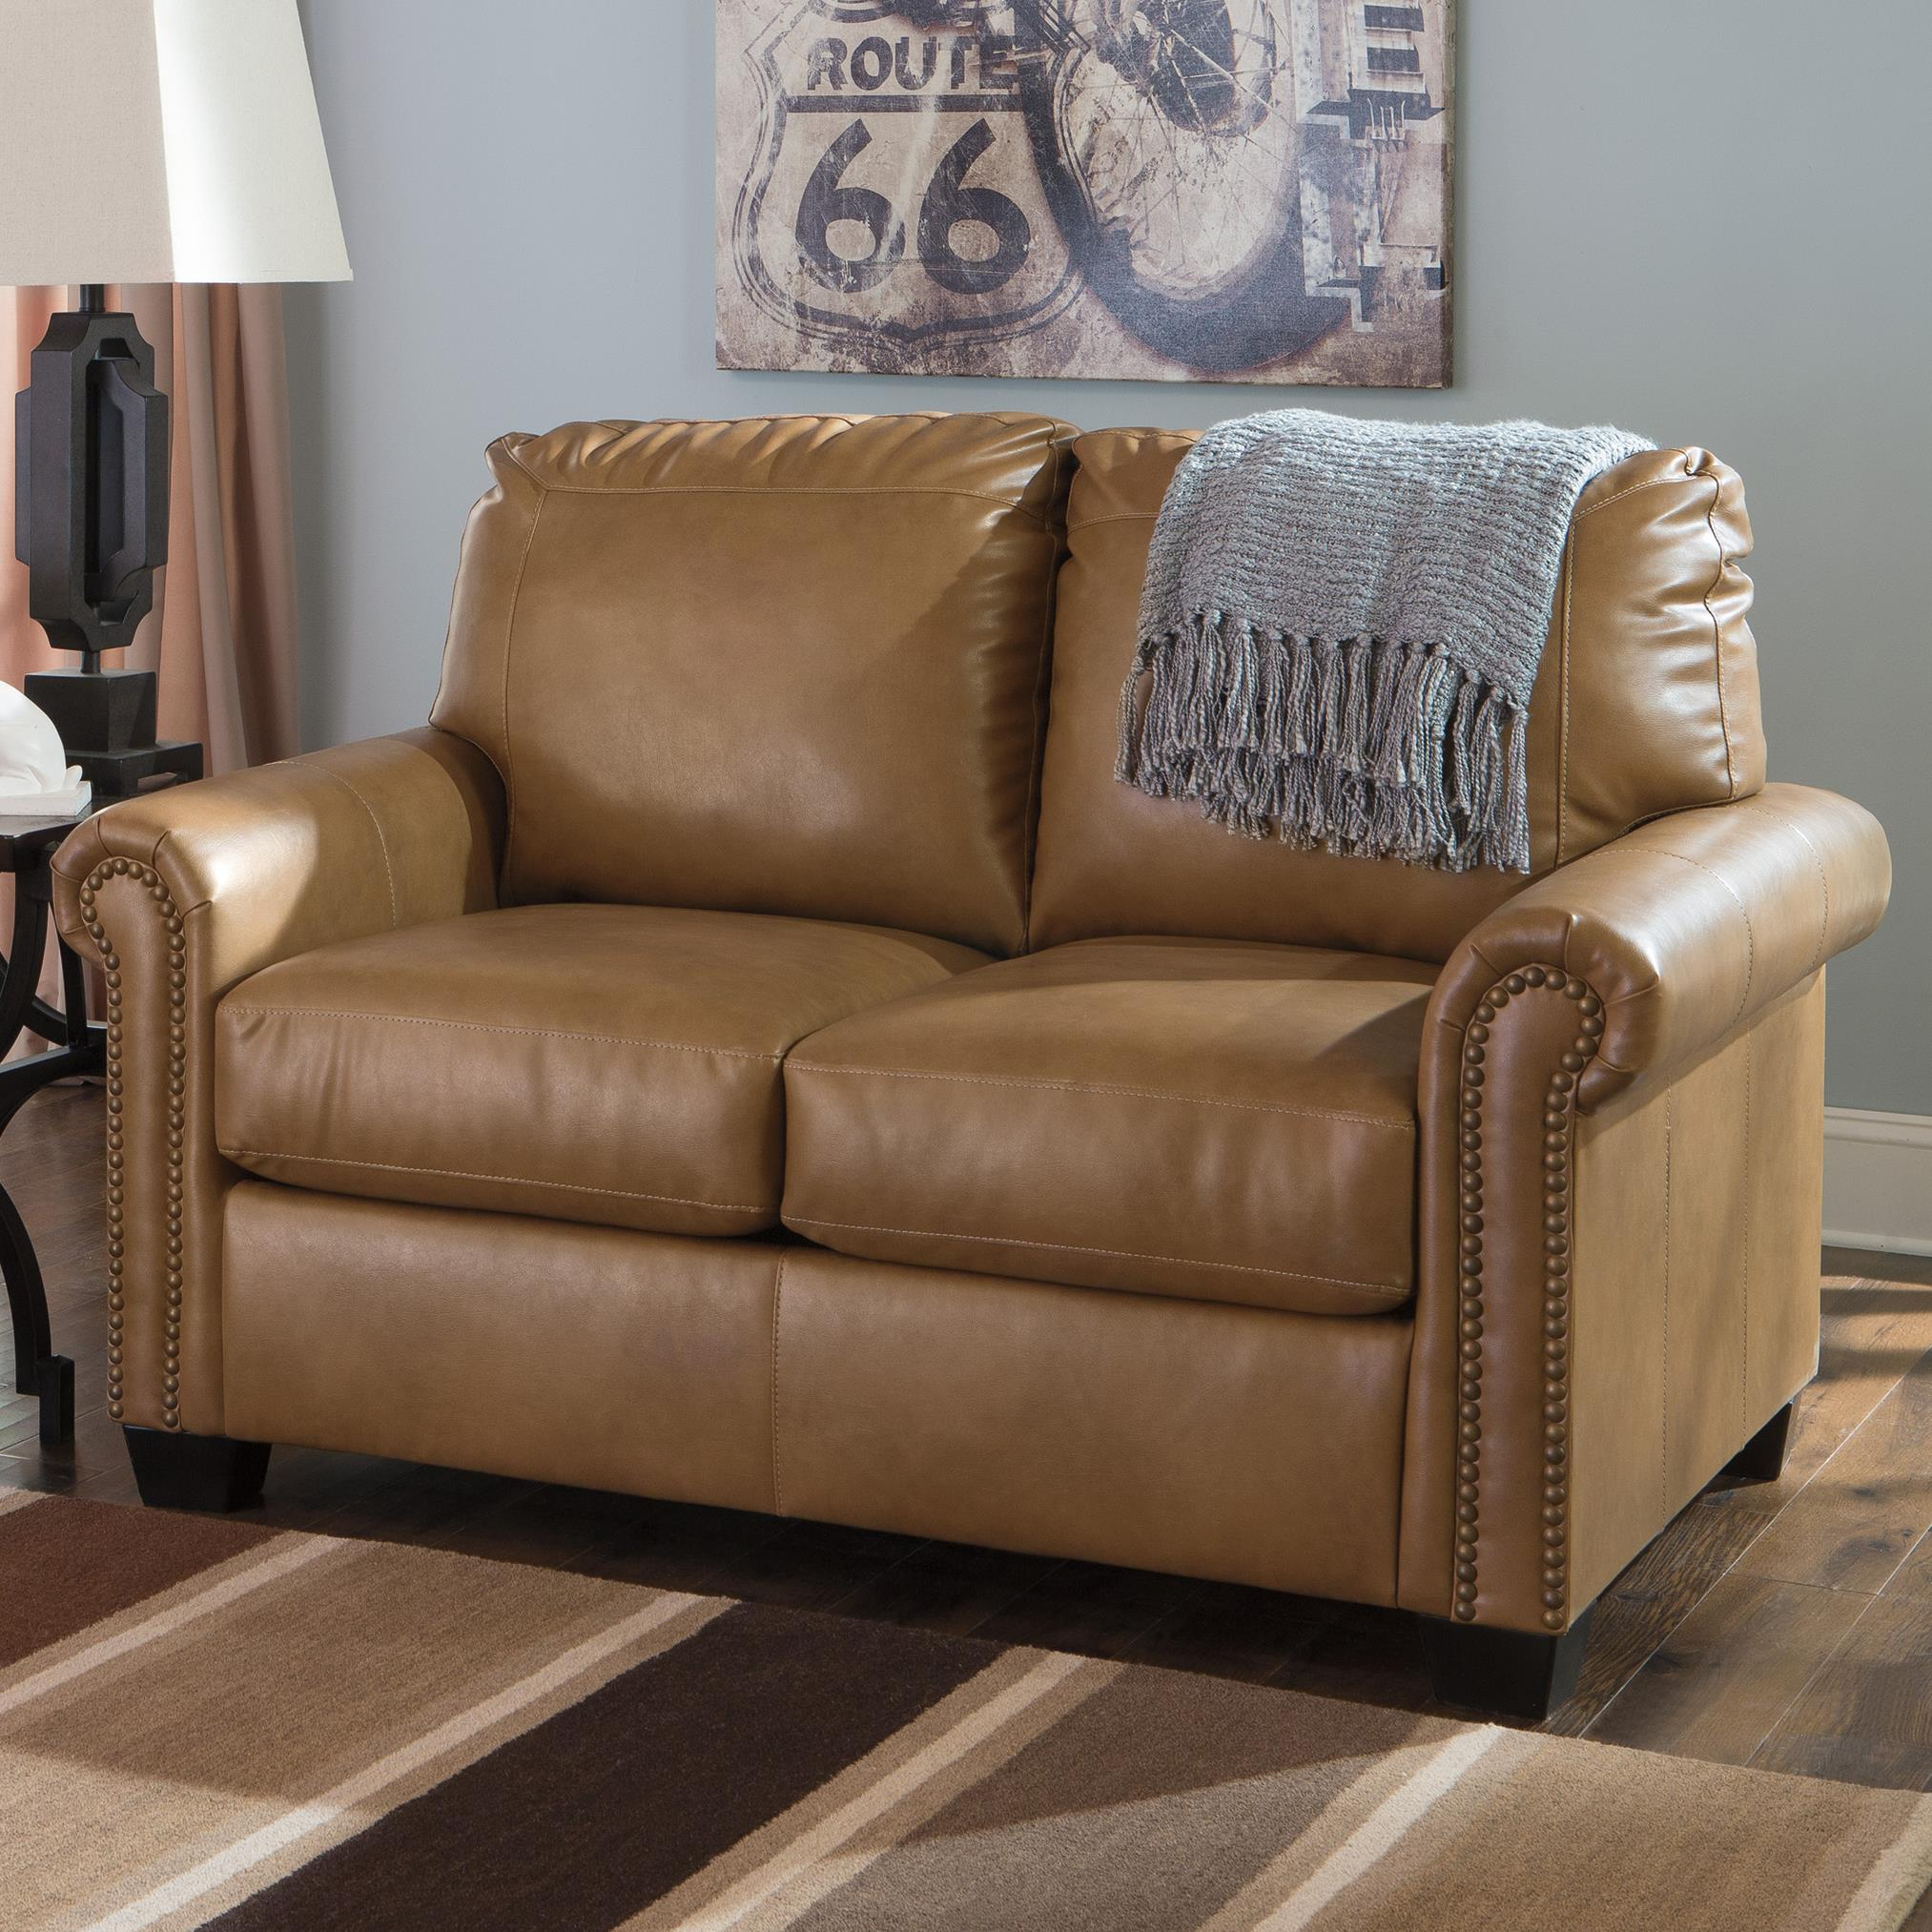 Signature Design by Ashley Lottie DuraBlend® Twin Sofa Sleeper - Item Number: 3800237